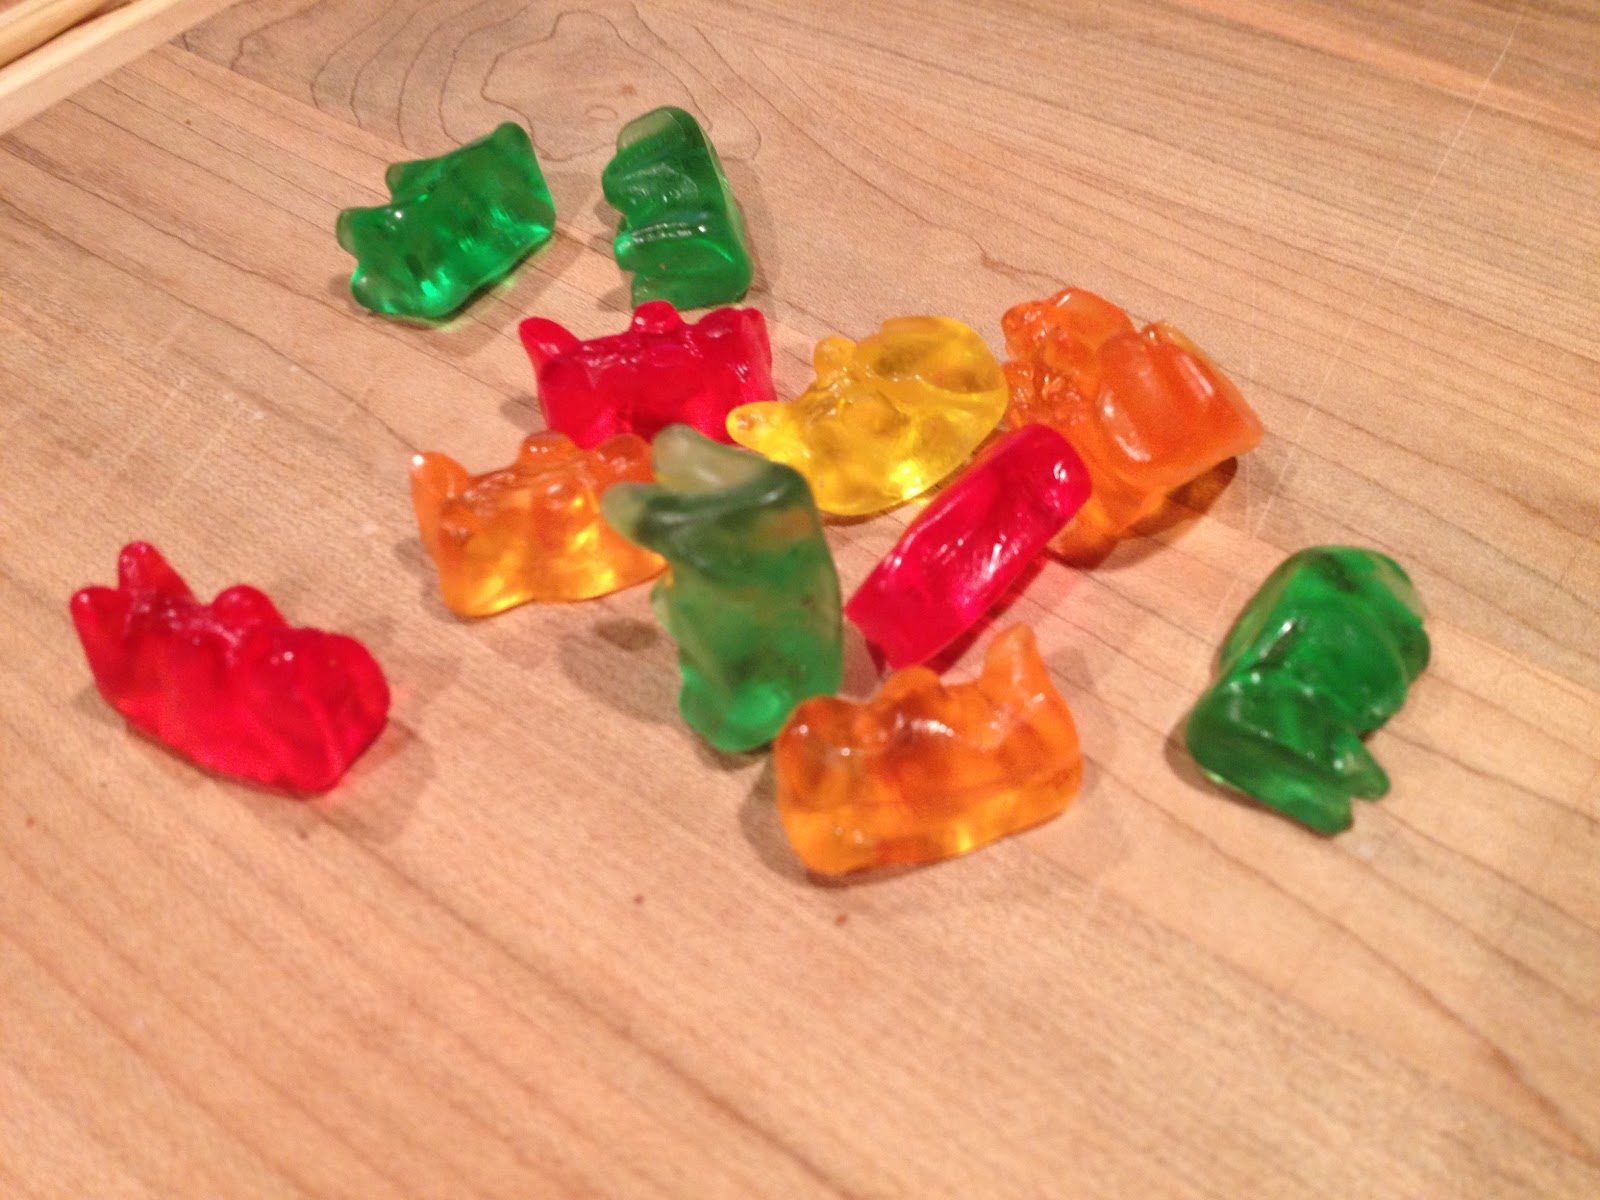 marvelous things: chocolate covered gummy bears